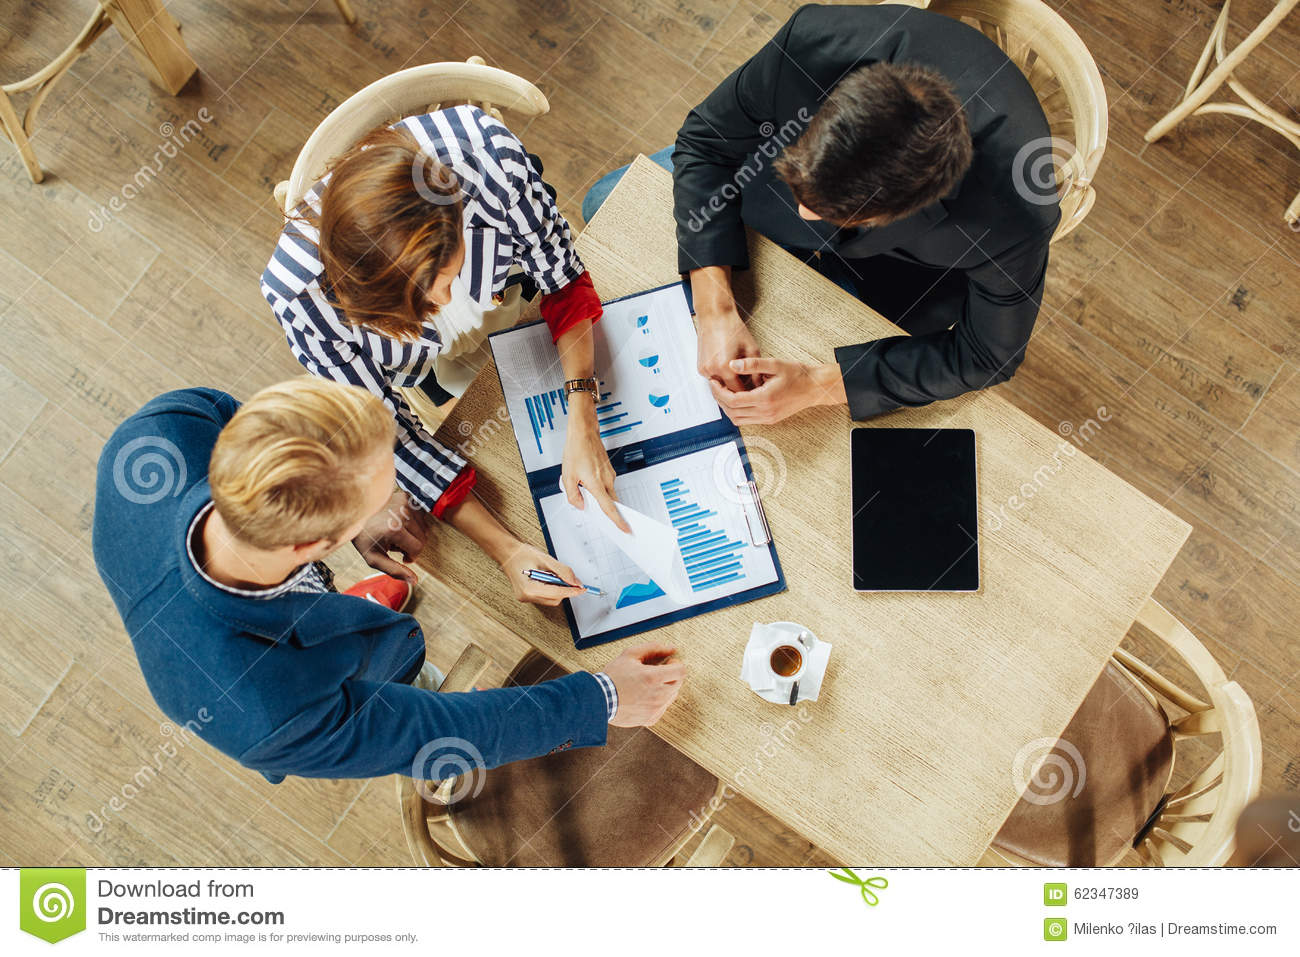 small team or group experience paper One of the main benefits of group work or a team environment is the ability to share ideas with the group for example, let's say there are several possible approaches to a project, and one of .